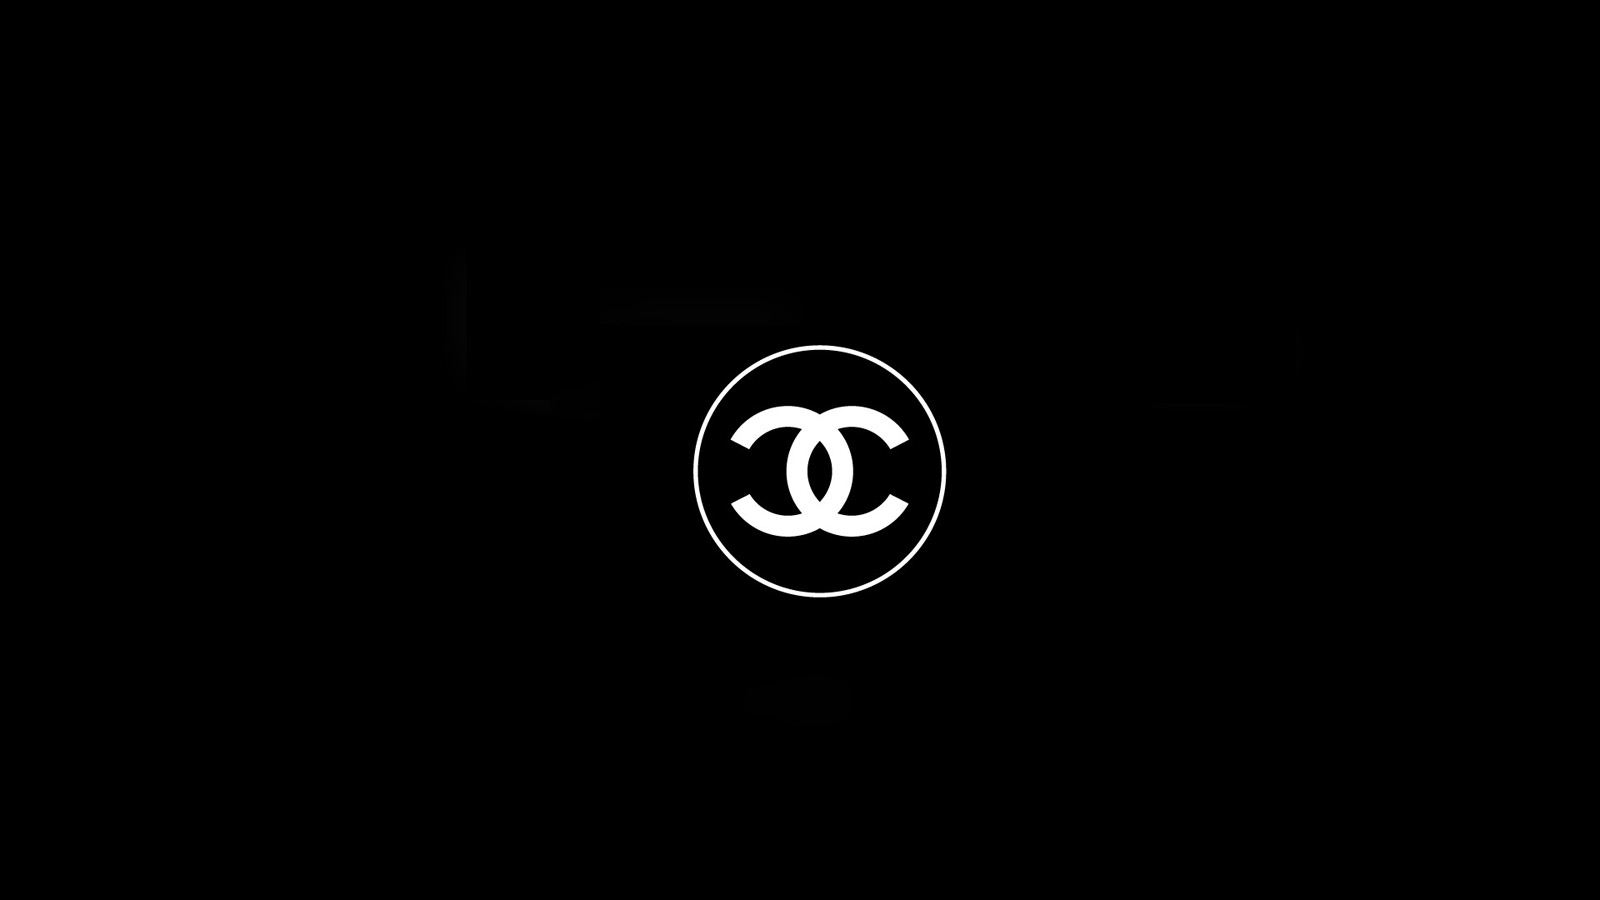 47 Chanel Black Wallpaper Hd On Wallpapersafari